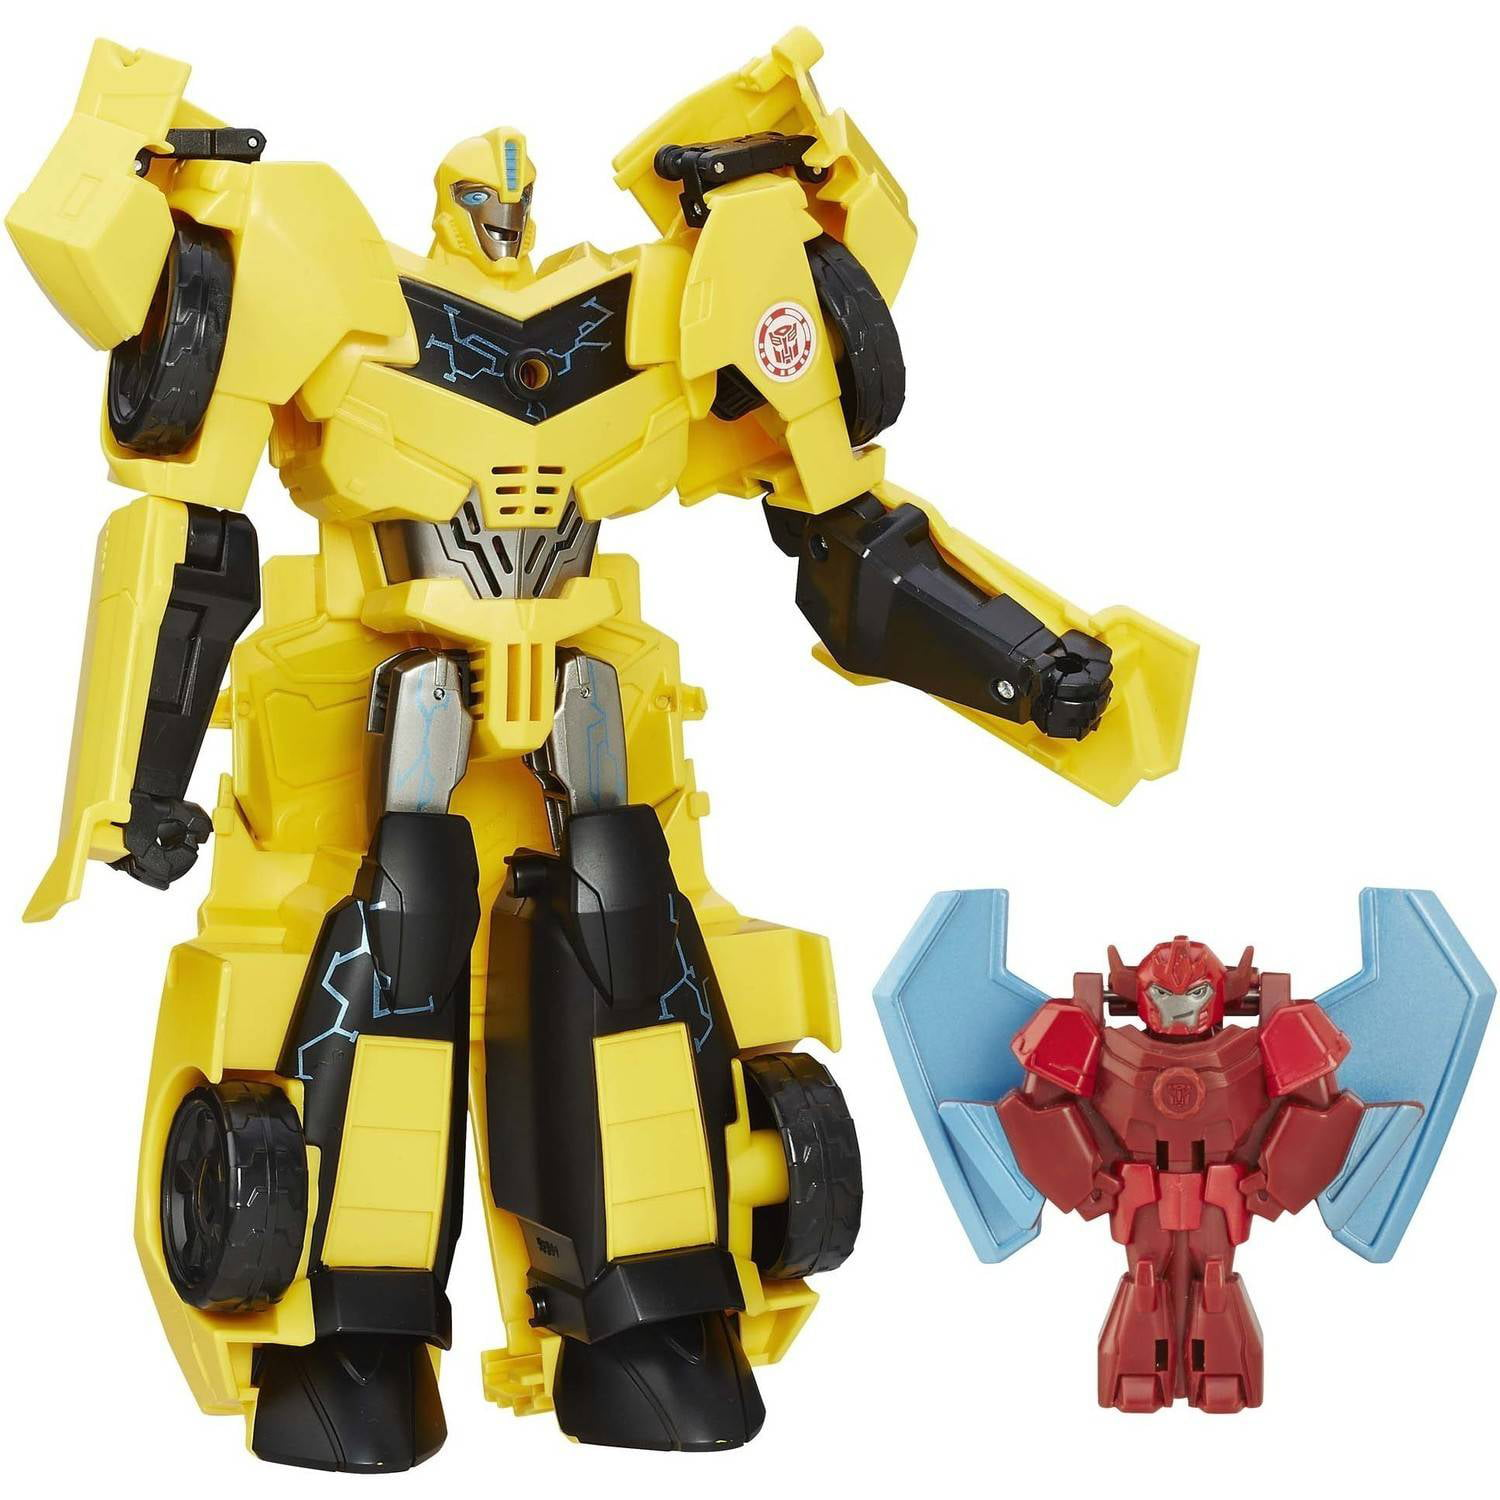 Transformers: Robots in Disguise Power Surge Bumblebee and Buzzstrike by Hasbro